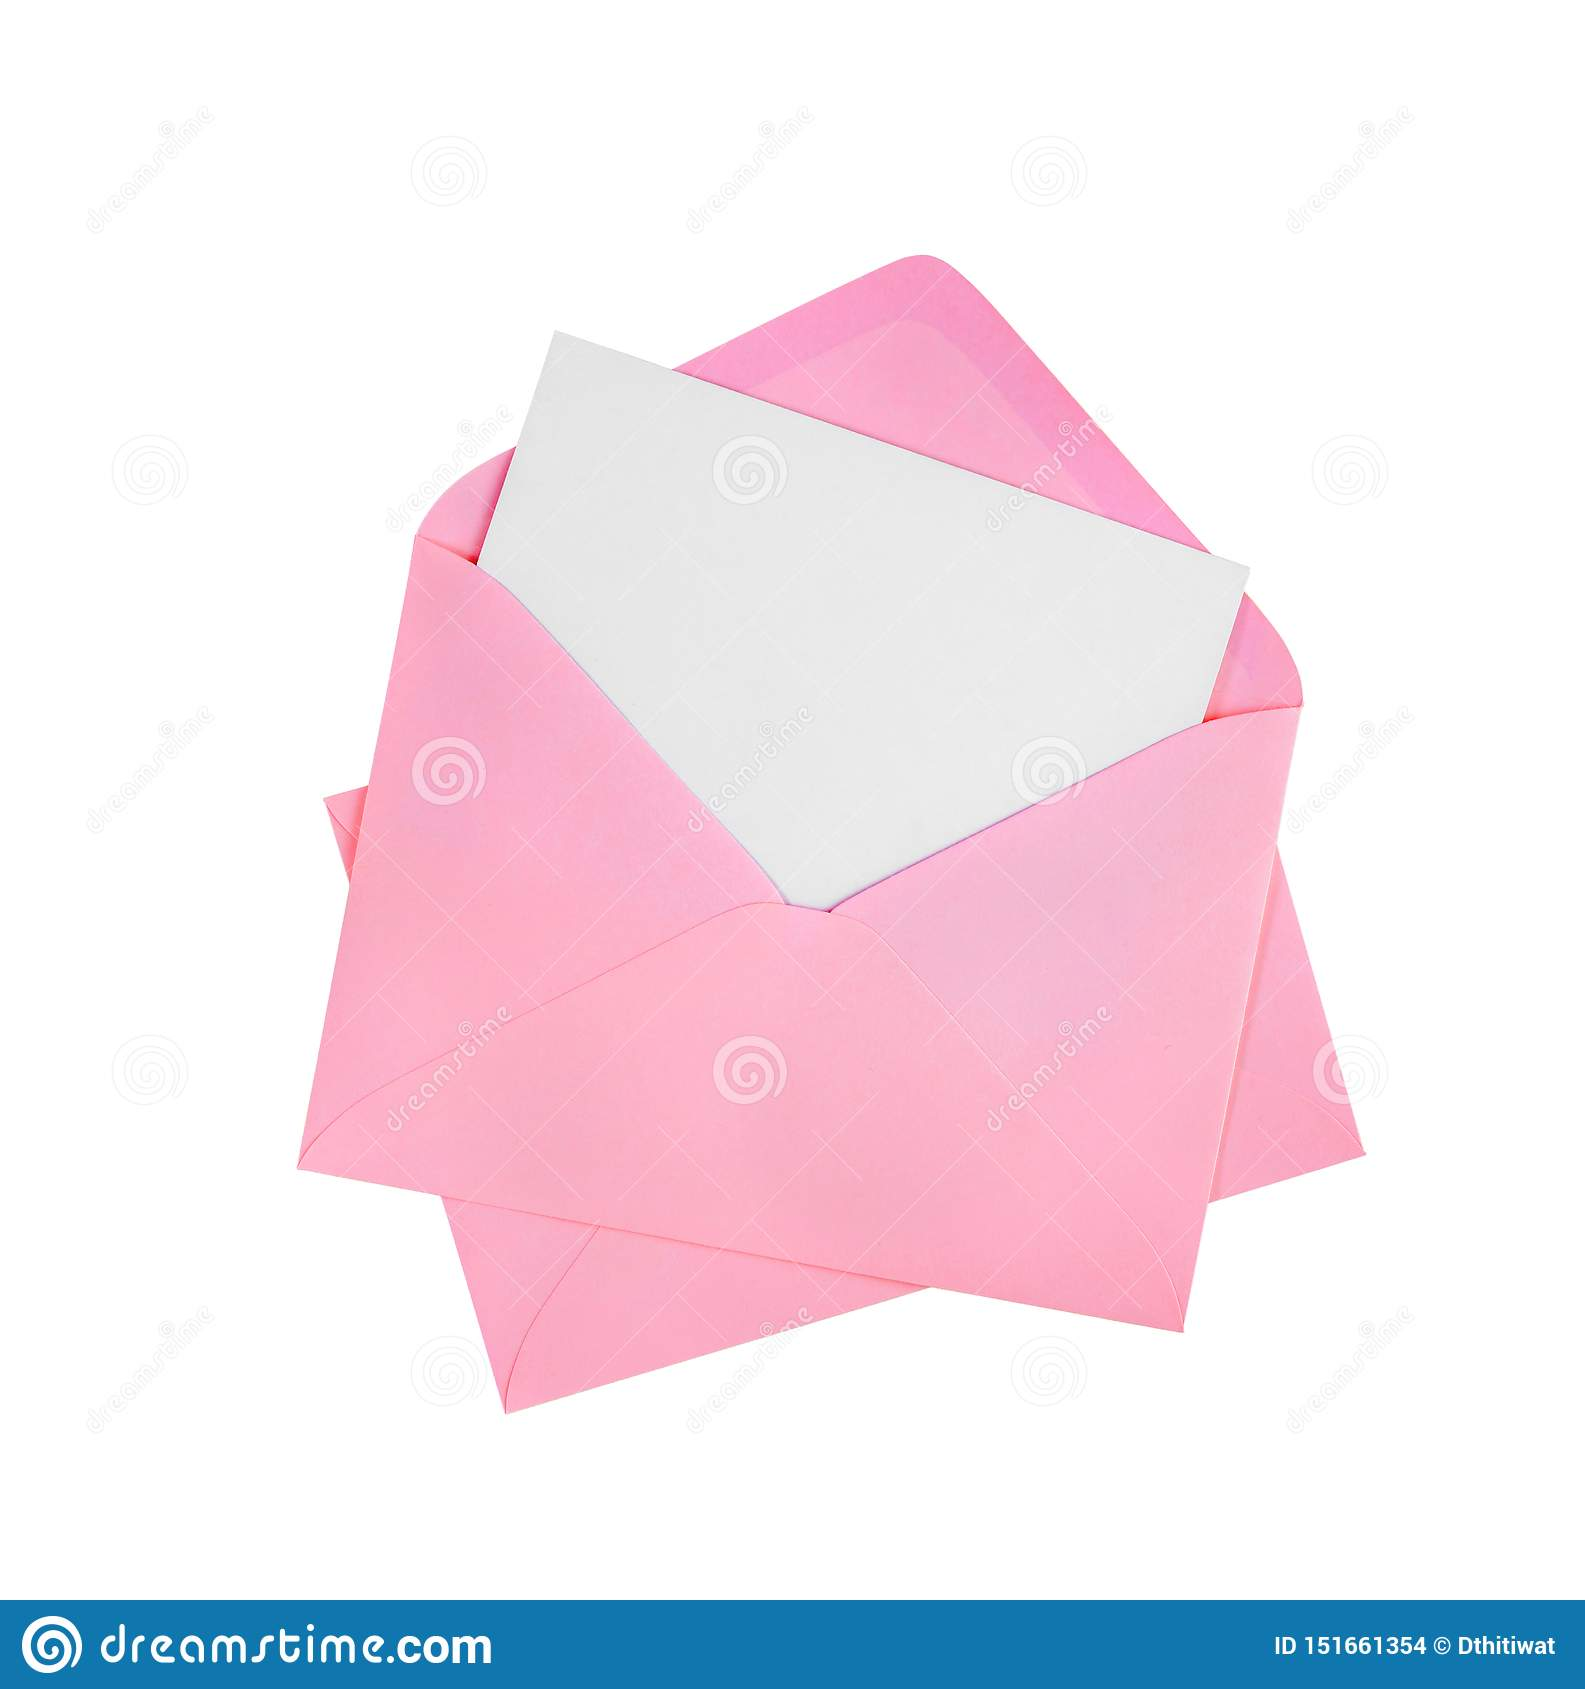 White card and pink envelope